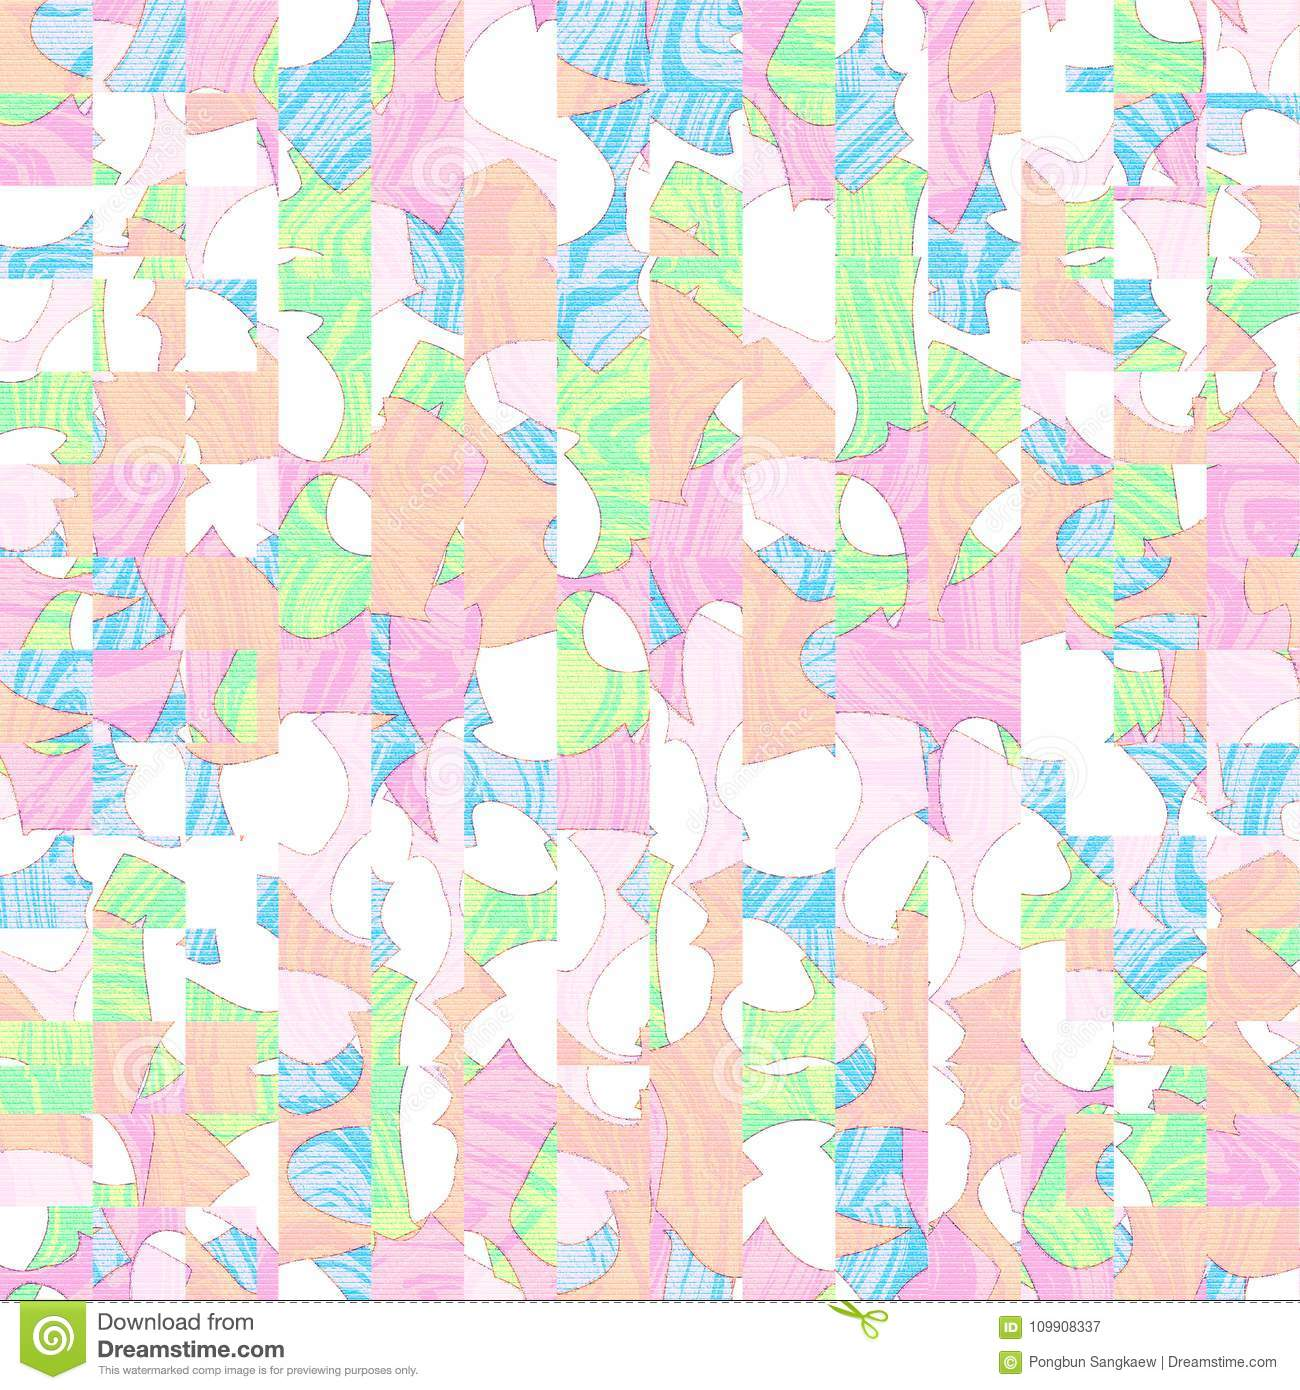 Colorful Digital Art Pastel Color Abstract Cool Backgroud